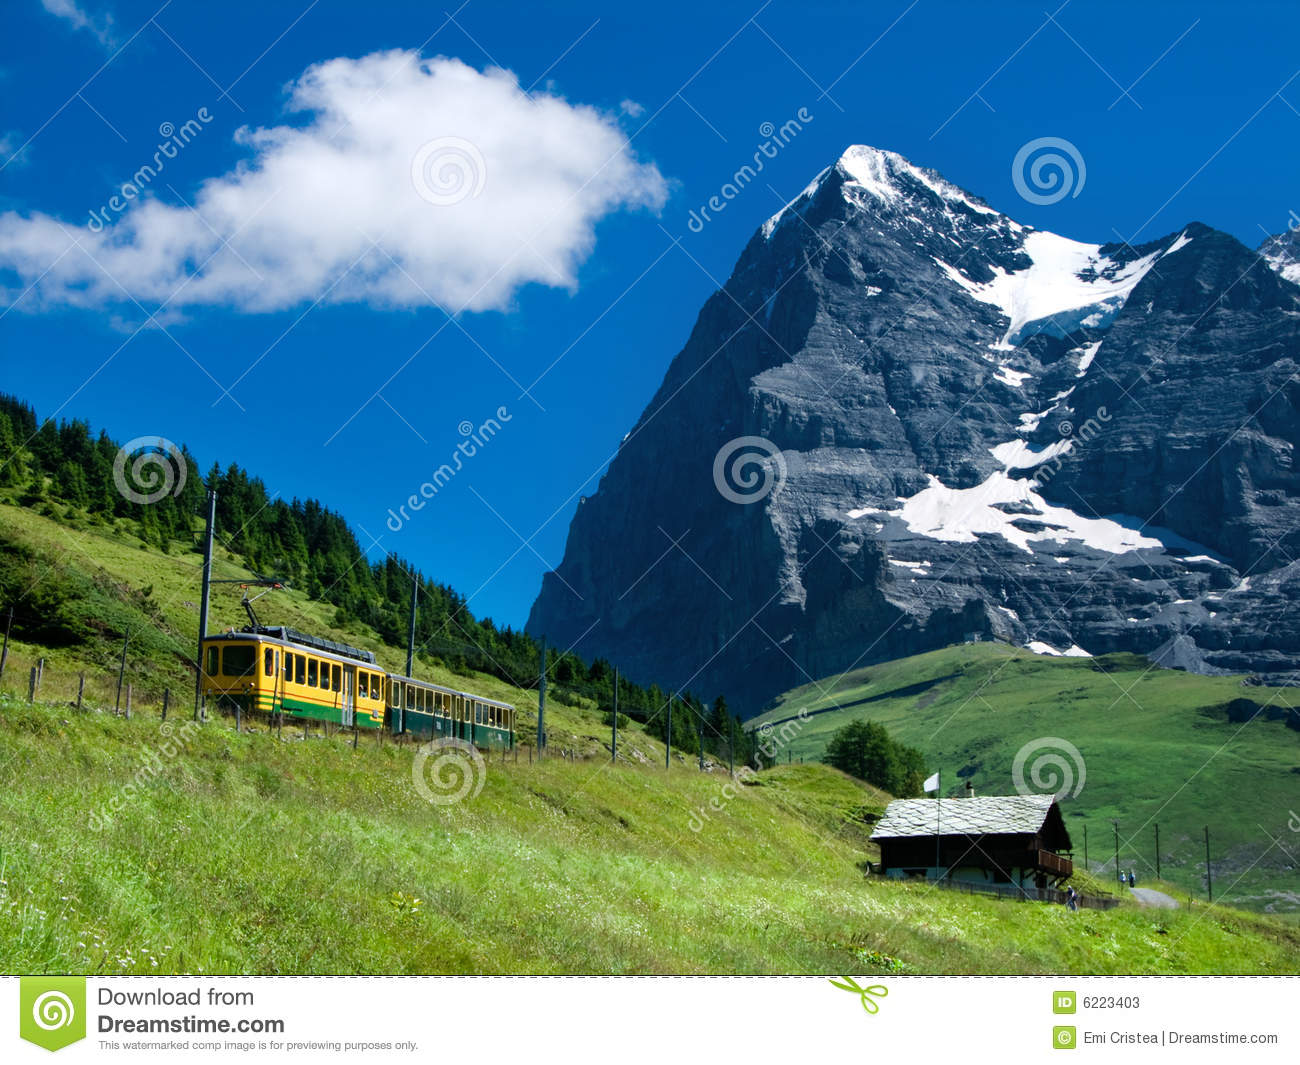 Mountain train on Eiger mountain, Switzerland